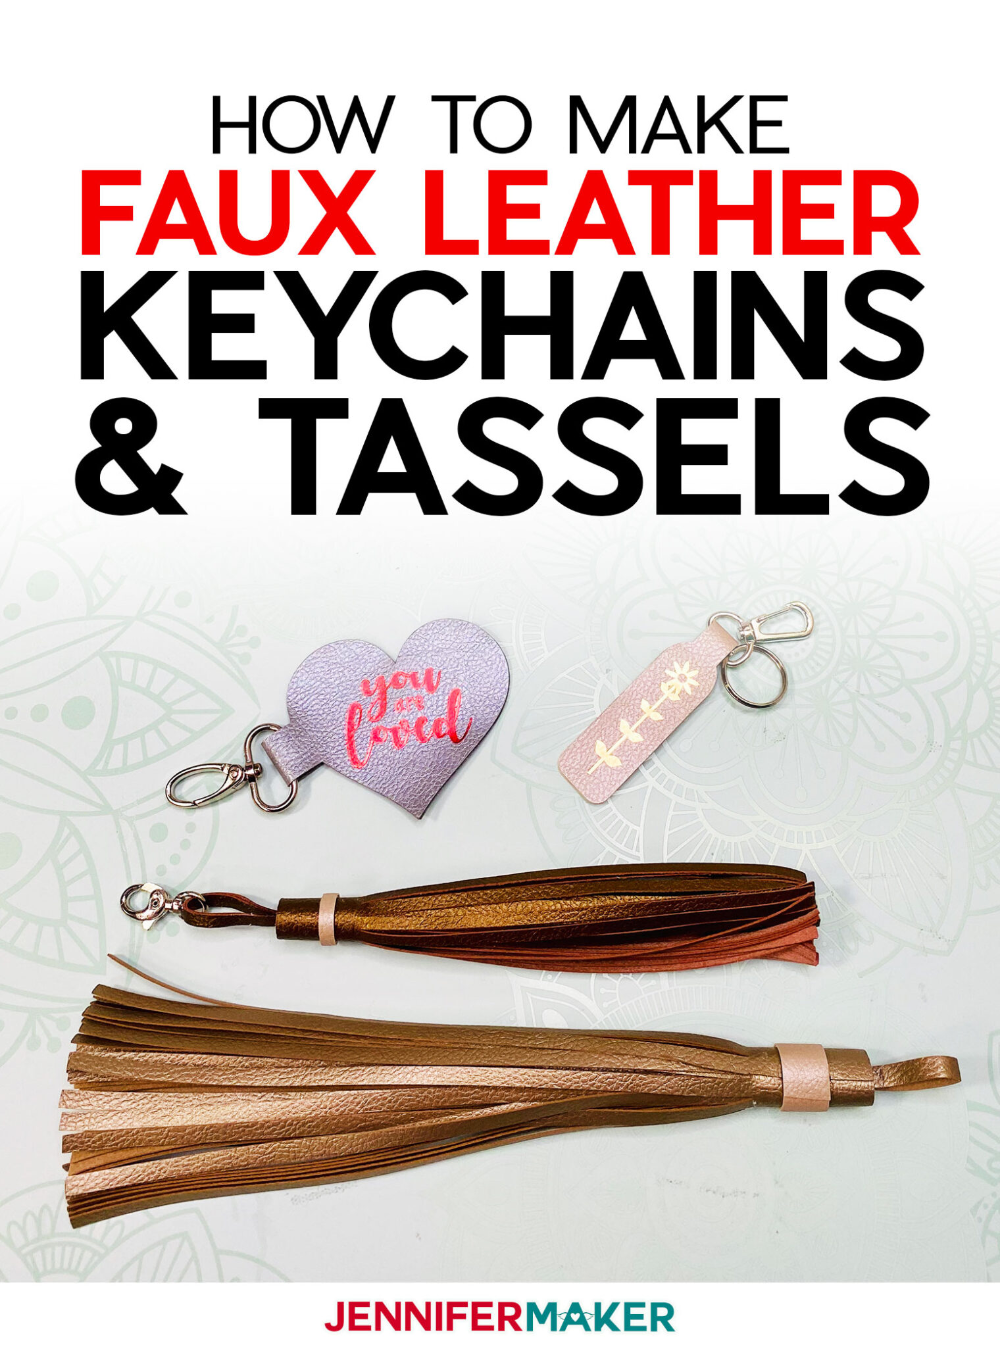 Easy Keychains and Tassels from Faux Leather Leather